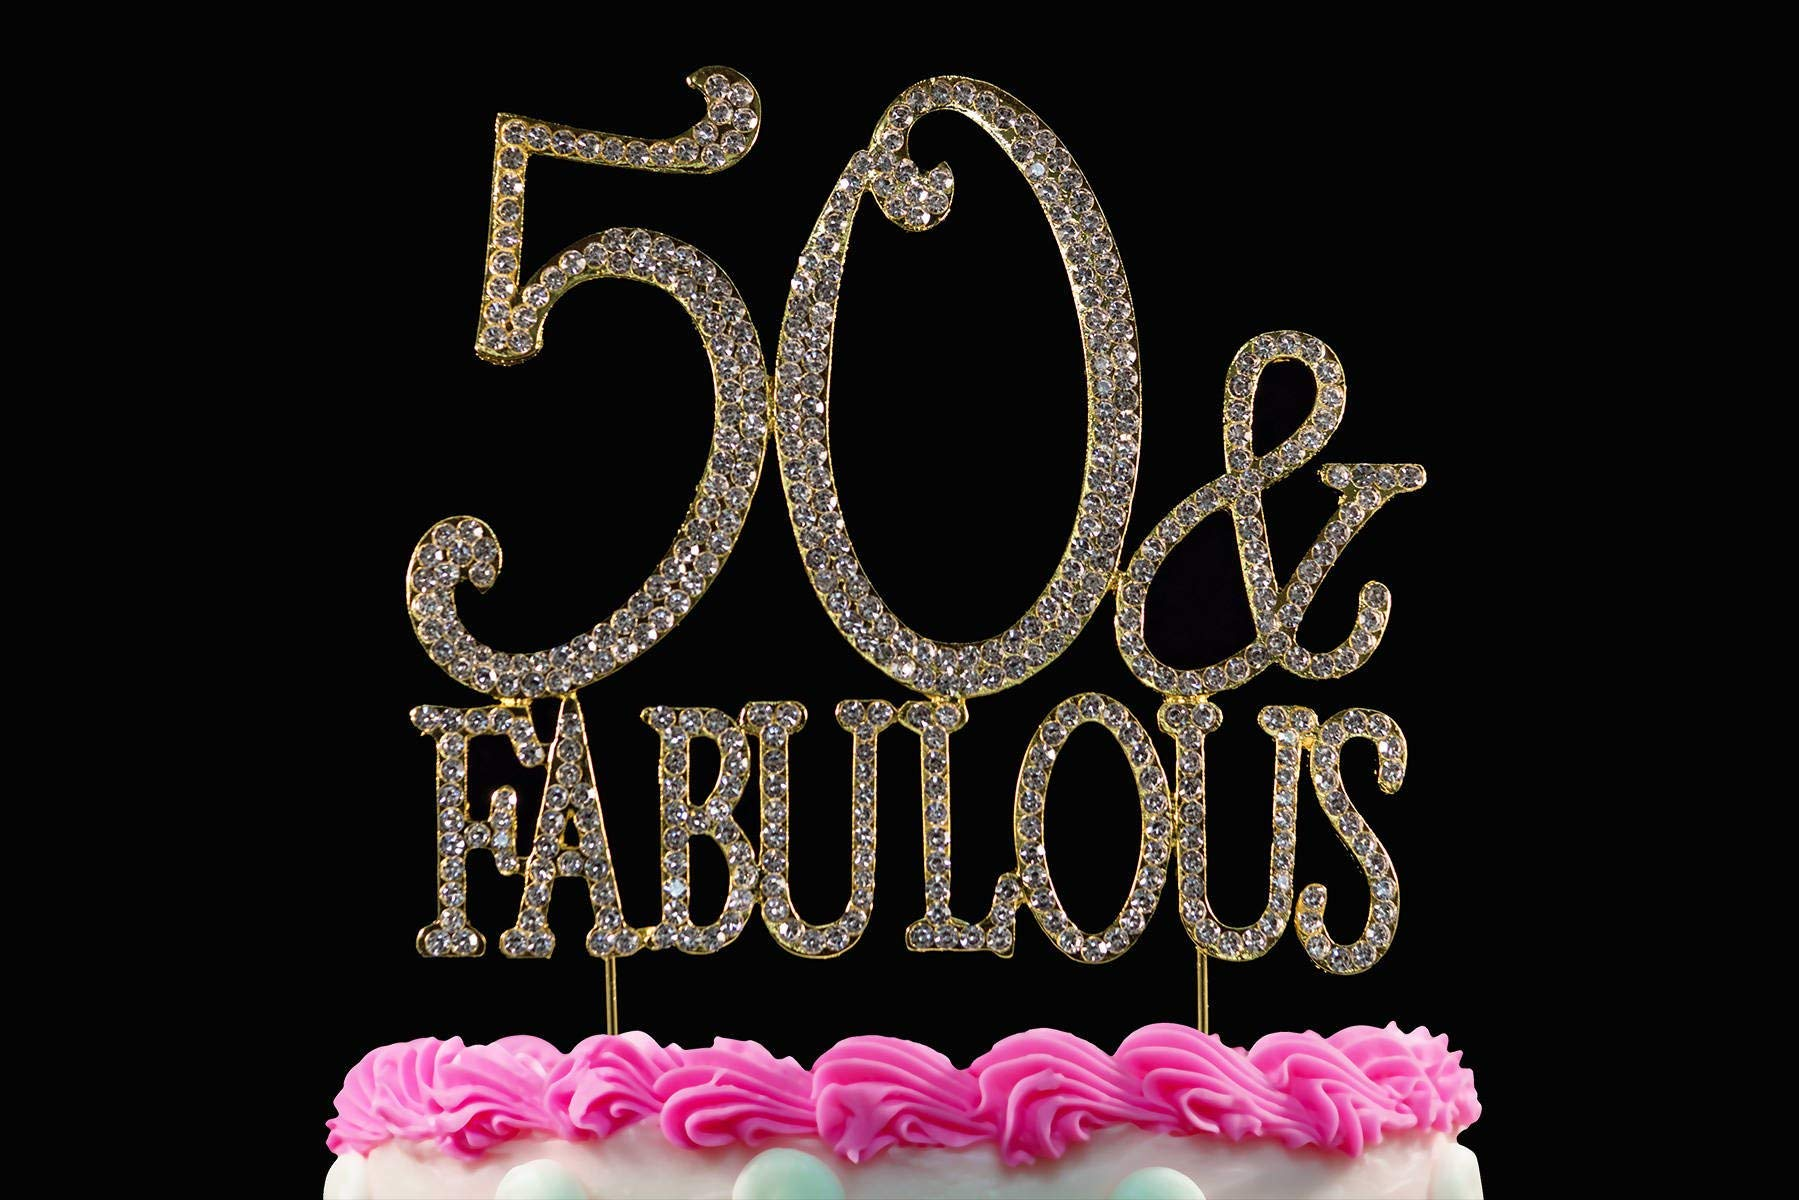 50 and Fabulous Rhinestone Cake Topper   Premium Sparkly Crystal Diamond Bling Gems   50th Birthday Party Decoration Ideas   Quality Metal Alloy   Perfect Keepsake (50&Fabulous Gold)